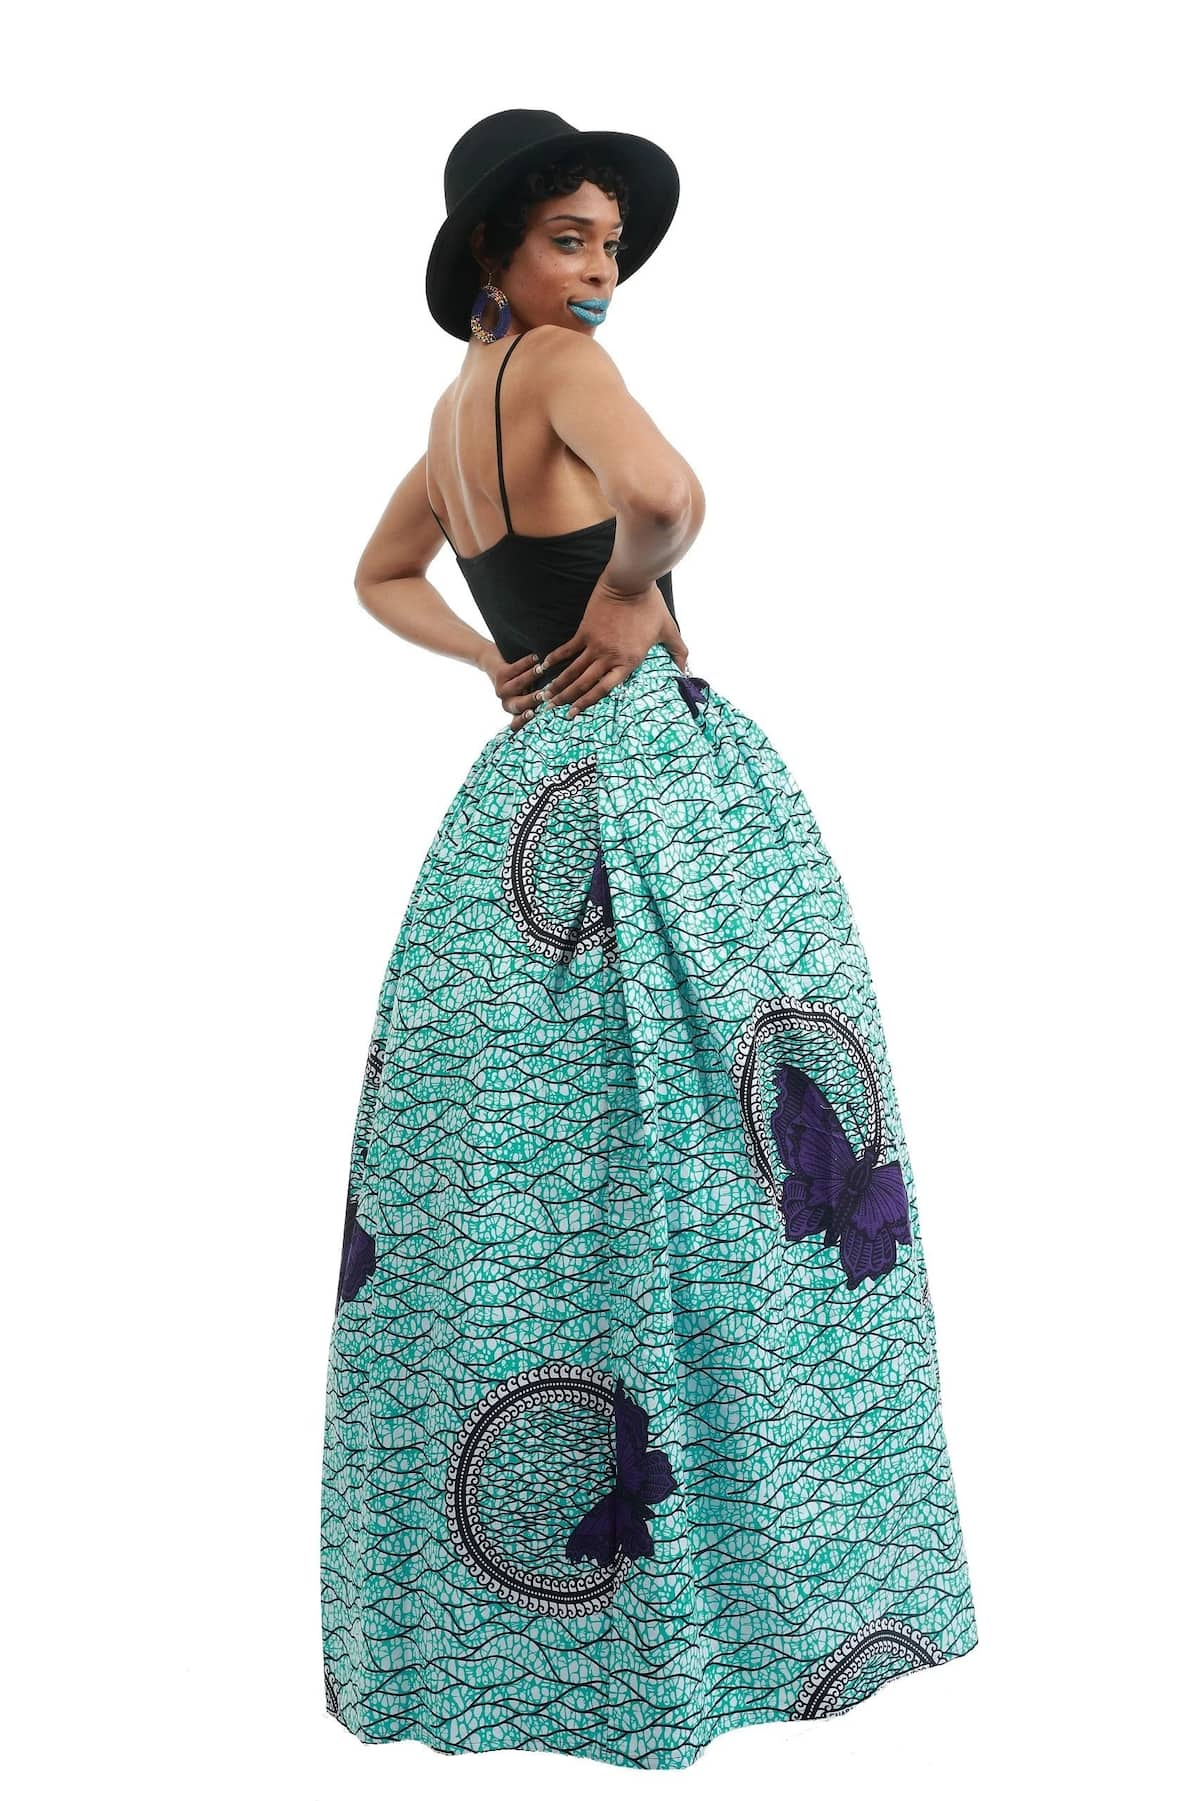 Latest Ankara styles for ladies- Maxi skirt